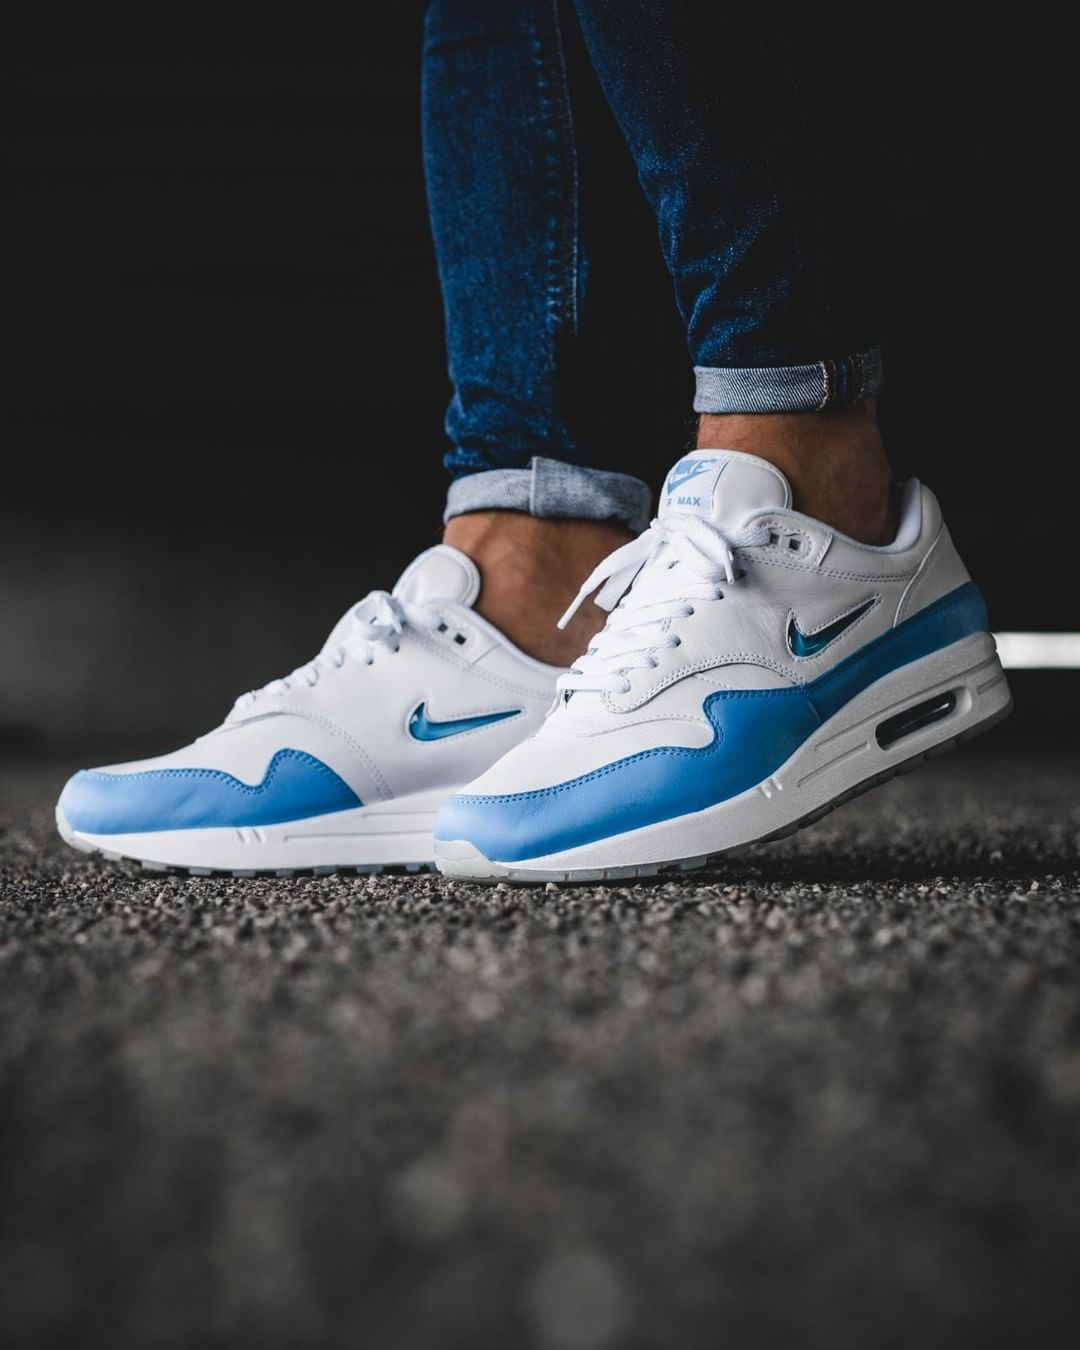 check out 3b17b a760c Nike Air Max 1 Premium SC  Jewel Swoosh    918354-102 (via Kicks-daily.com)  Click to shop. Find this Pin and more on Shoes ...